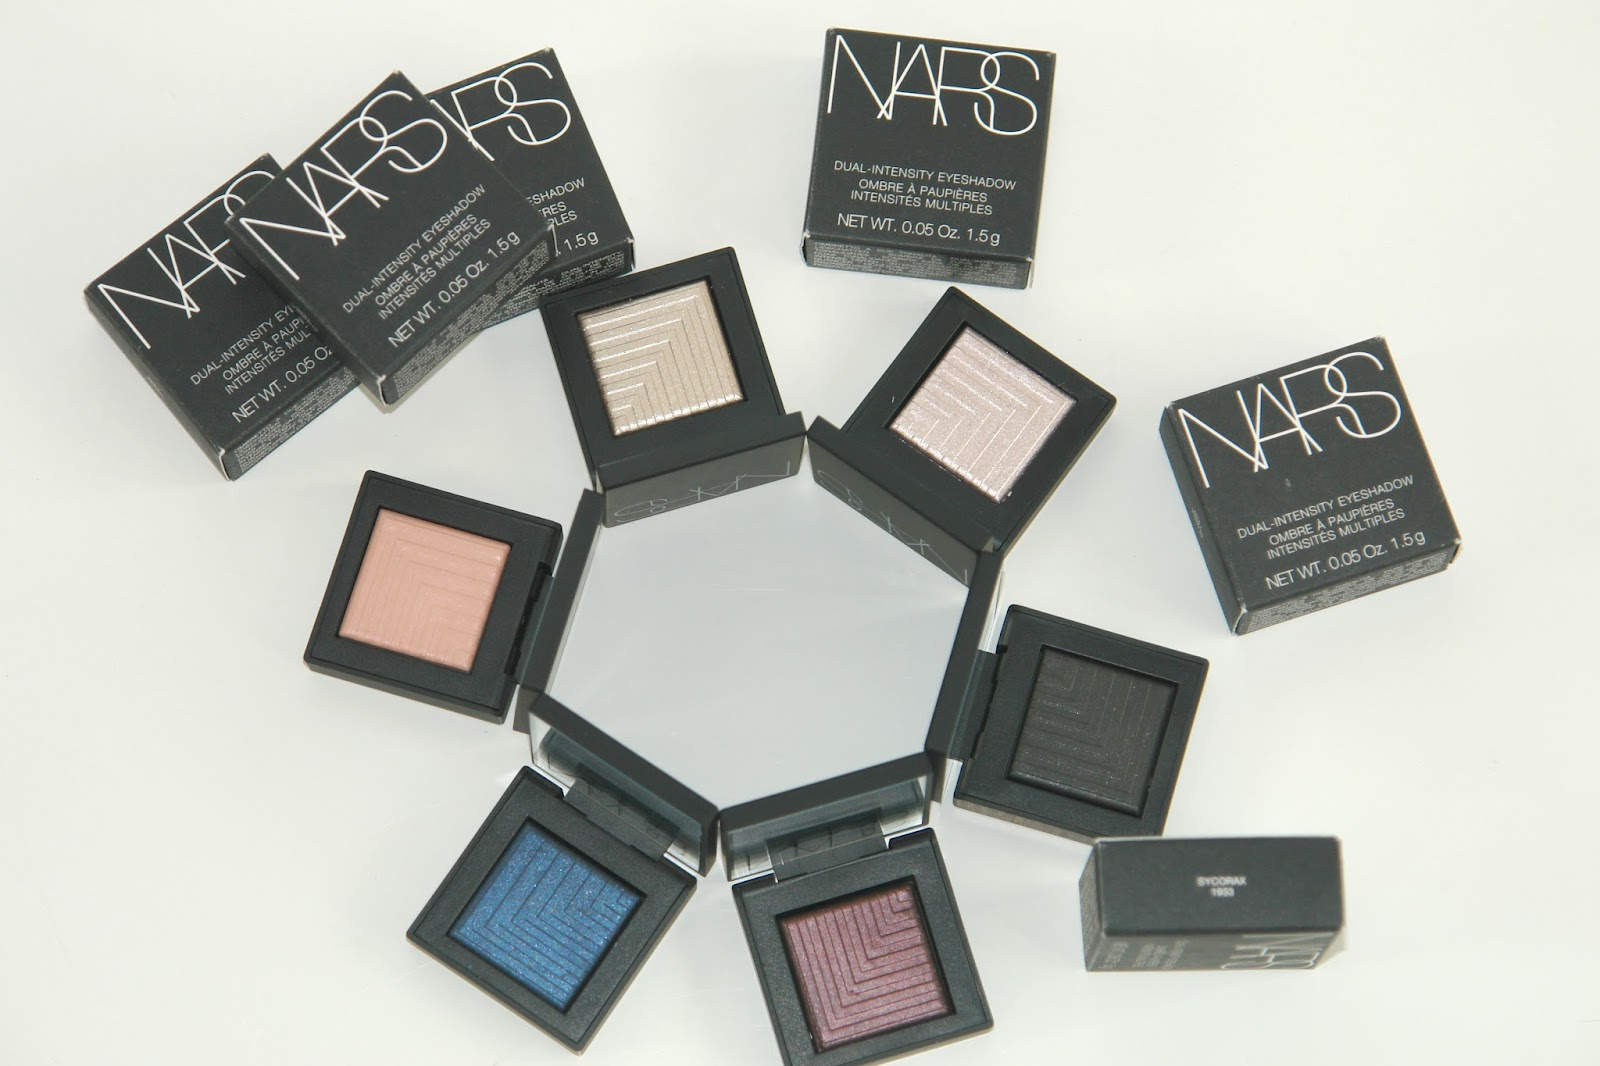 NARS Dual-Intensity Eyeshadows, eye shadows, make up, NARS, review, Space NK, swatches, make up look, Europa, Dione, Callisto, Giove, Subra, Sycorax, Andromeda, Cassiopeia, Desdemona, Himalia, Lysithea, Phoebe, MUA, UK beauty blog, top beauty blog, bbloggers, new launch, Space NK exclusive,